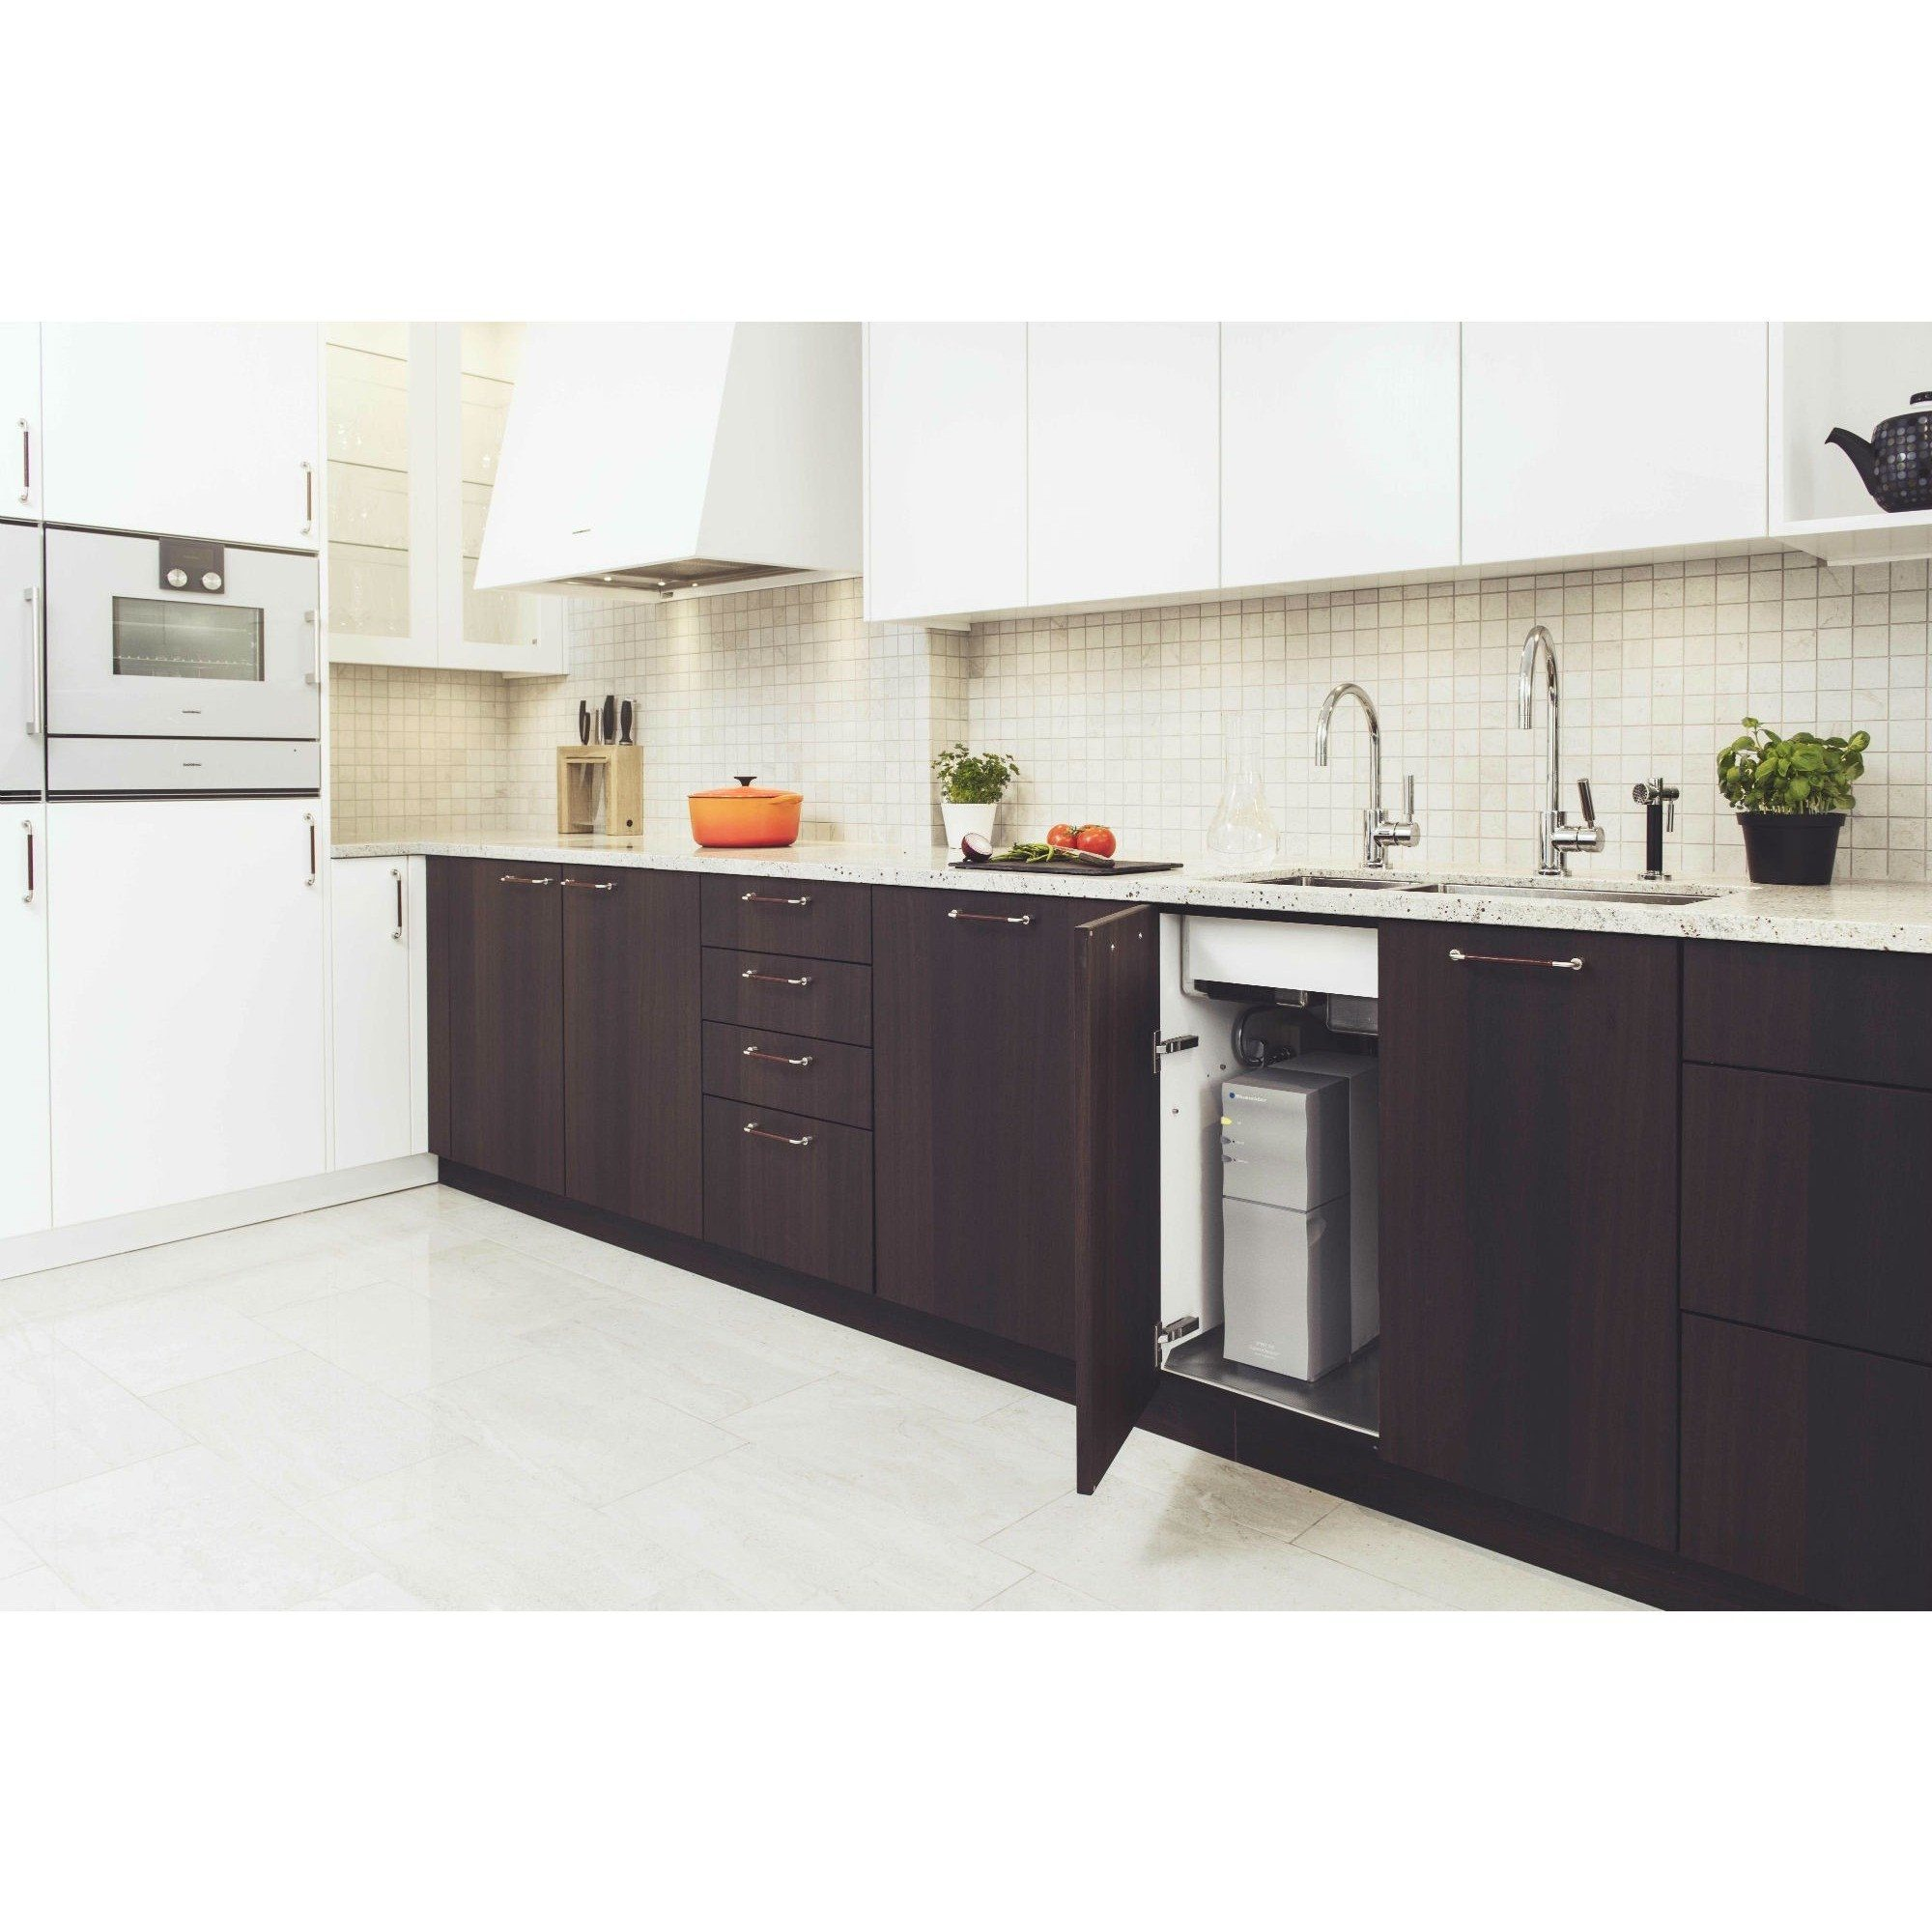 home adding countertop system a countertops our scratch img osmosis how from s reverse